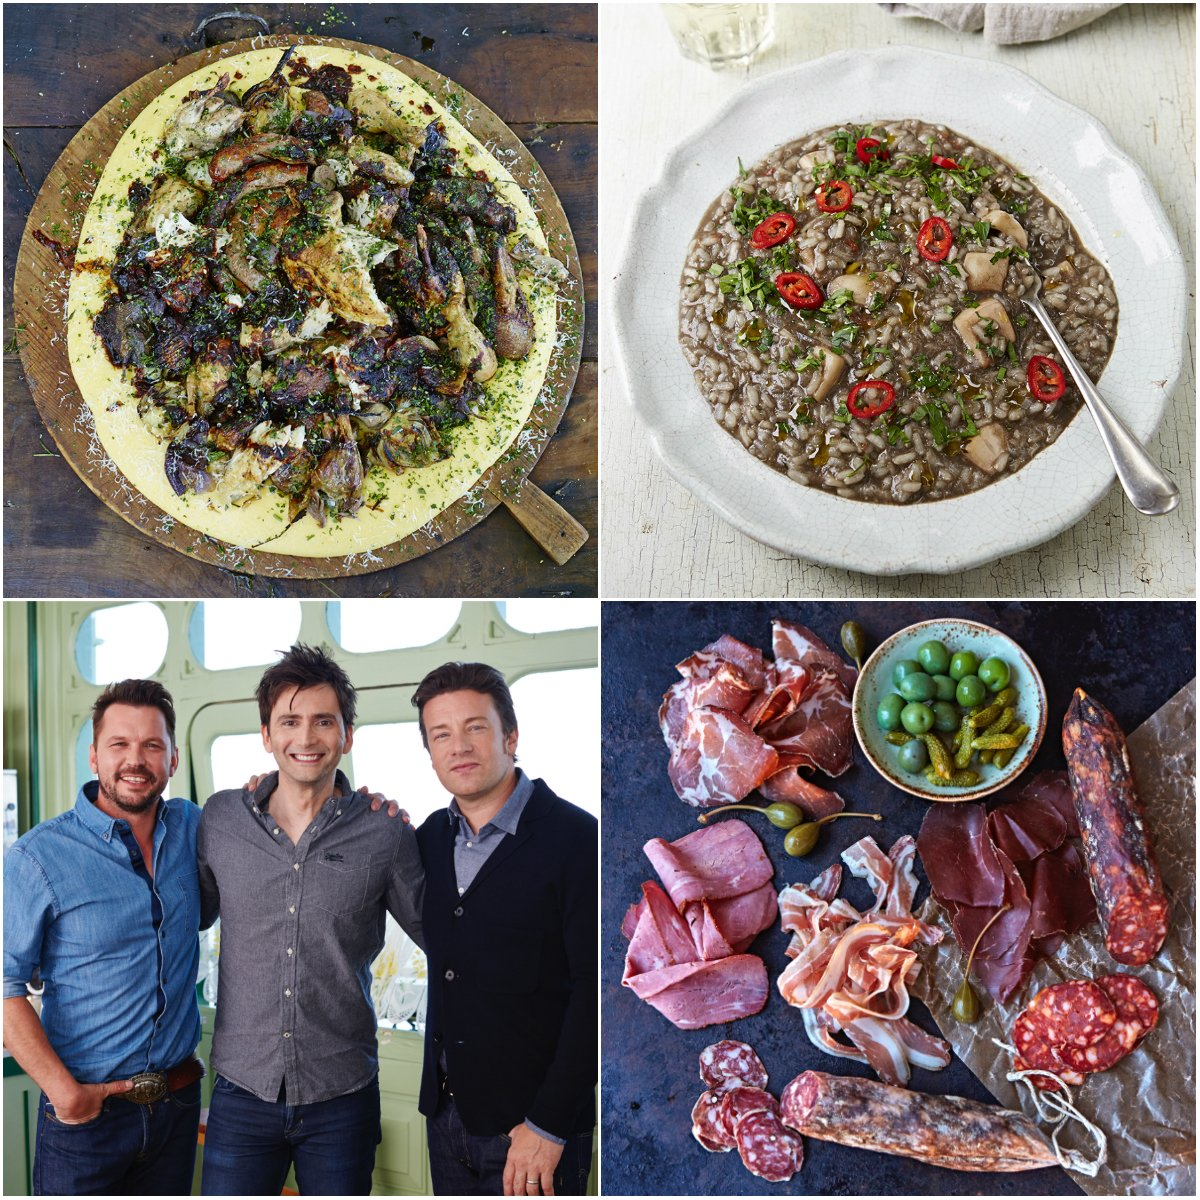 On now guys #FridayNightFeast https://t.co/TD6LhjXy7H. Get watching over on @channel4 https://t.co/qNzS5lJ2fL